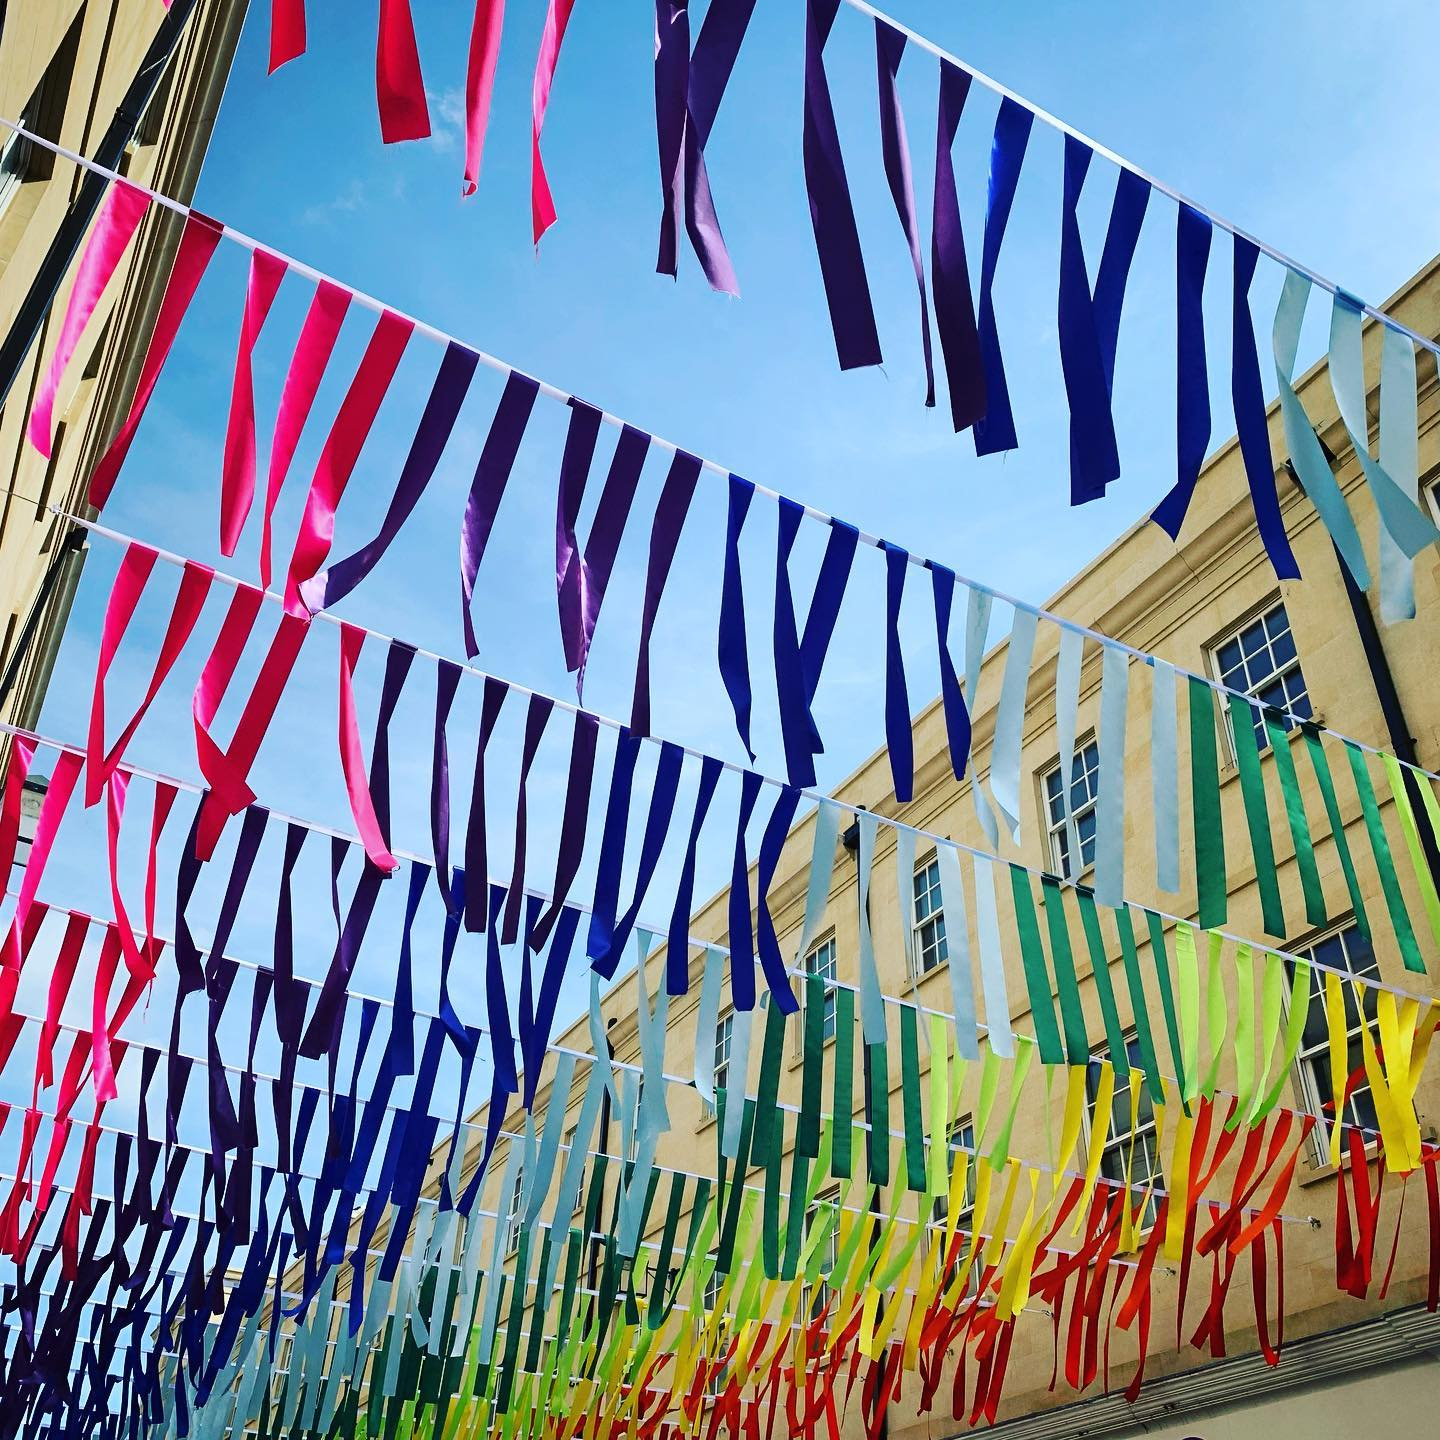 Cheerful colour at Baths Southgate  love how the tassels move constantly in the wind. ..#bath #bathbid #towncentre #home #rainbow #colour #cheer #somerset